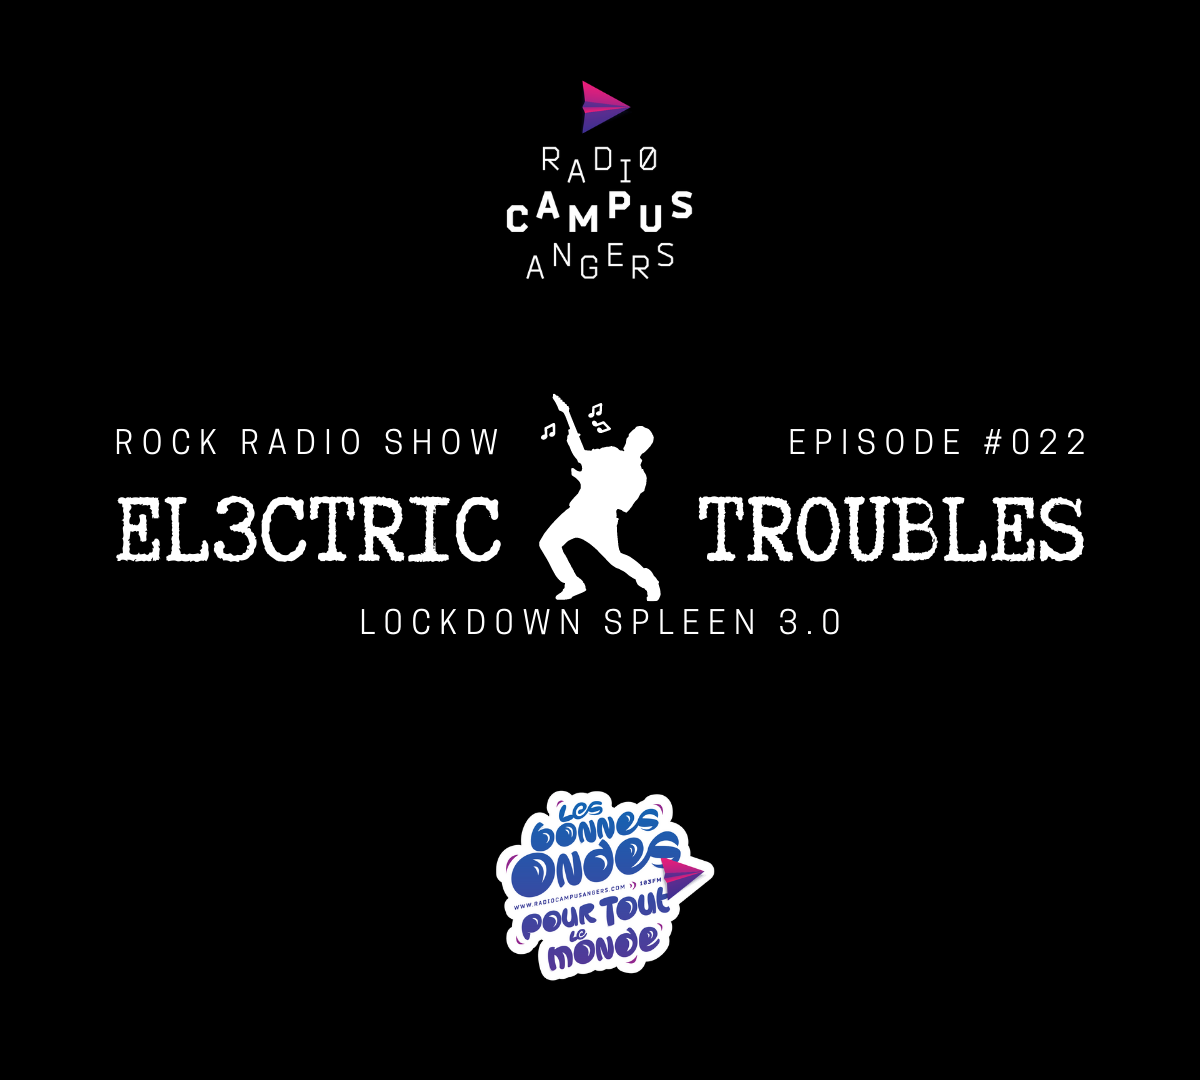 Electric Troubles 022